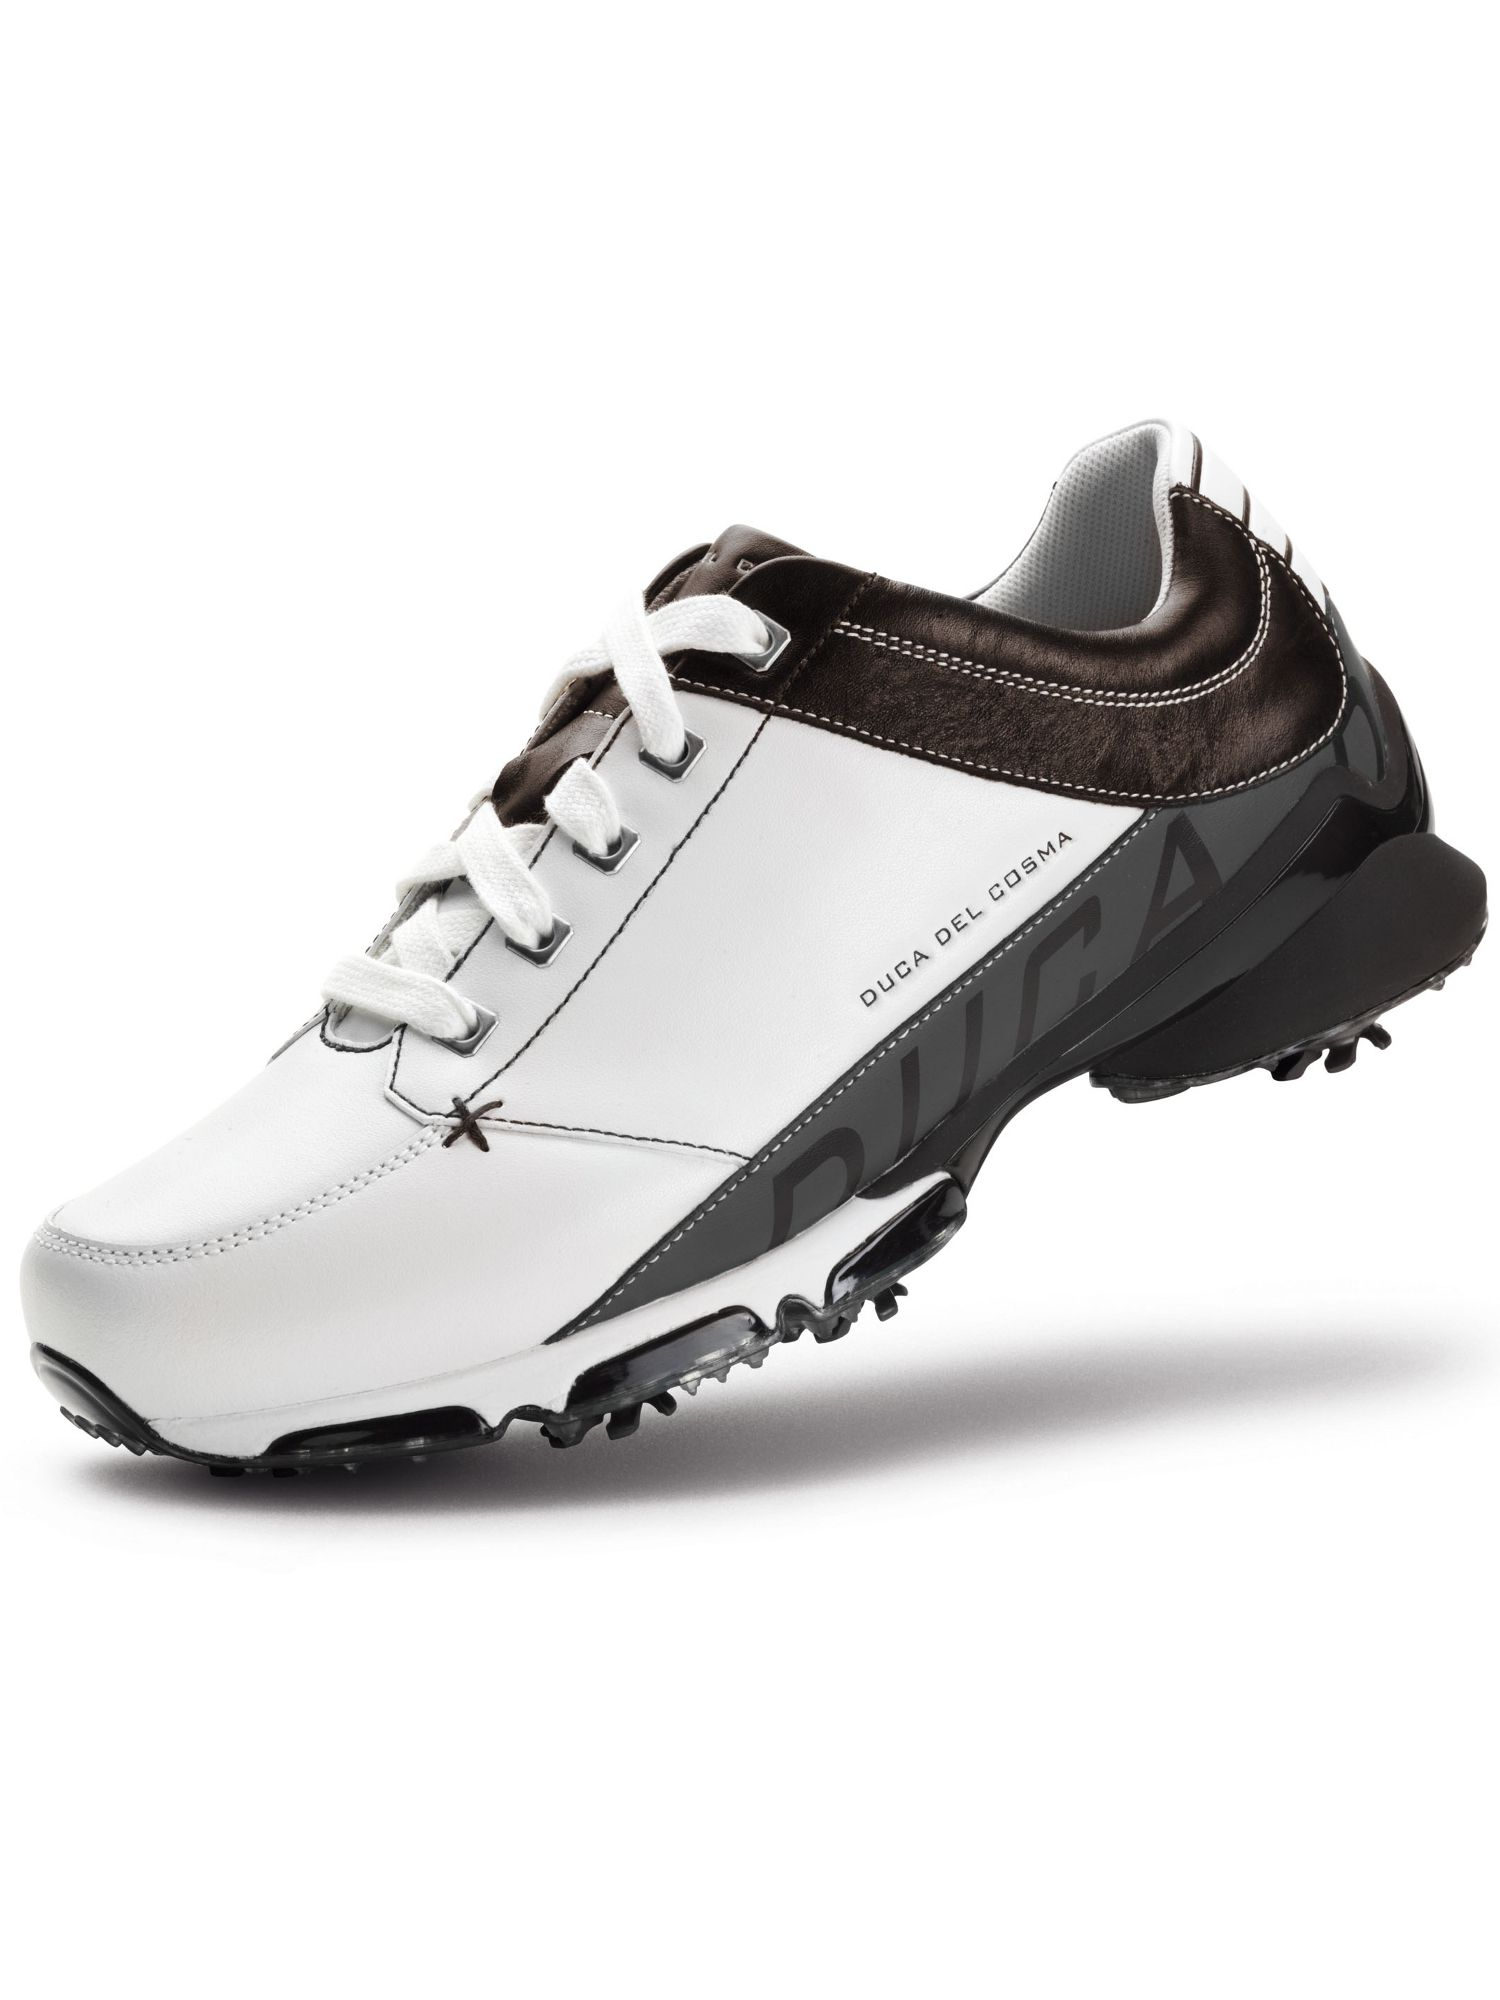 Break-up golf shoes